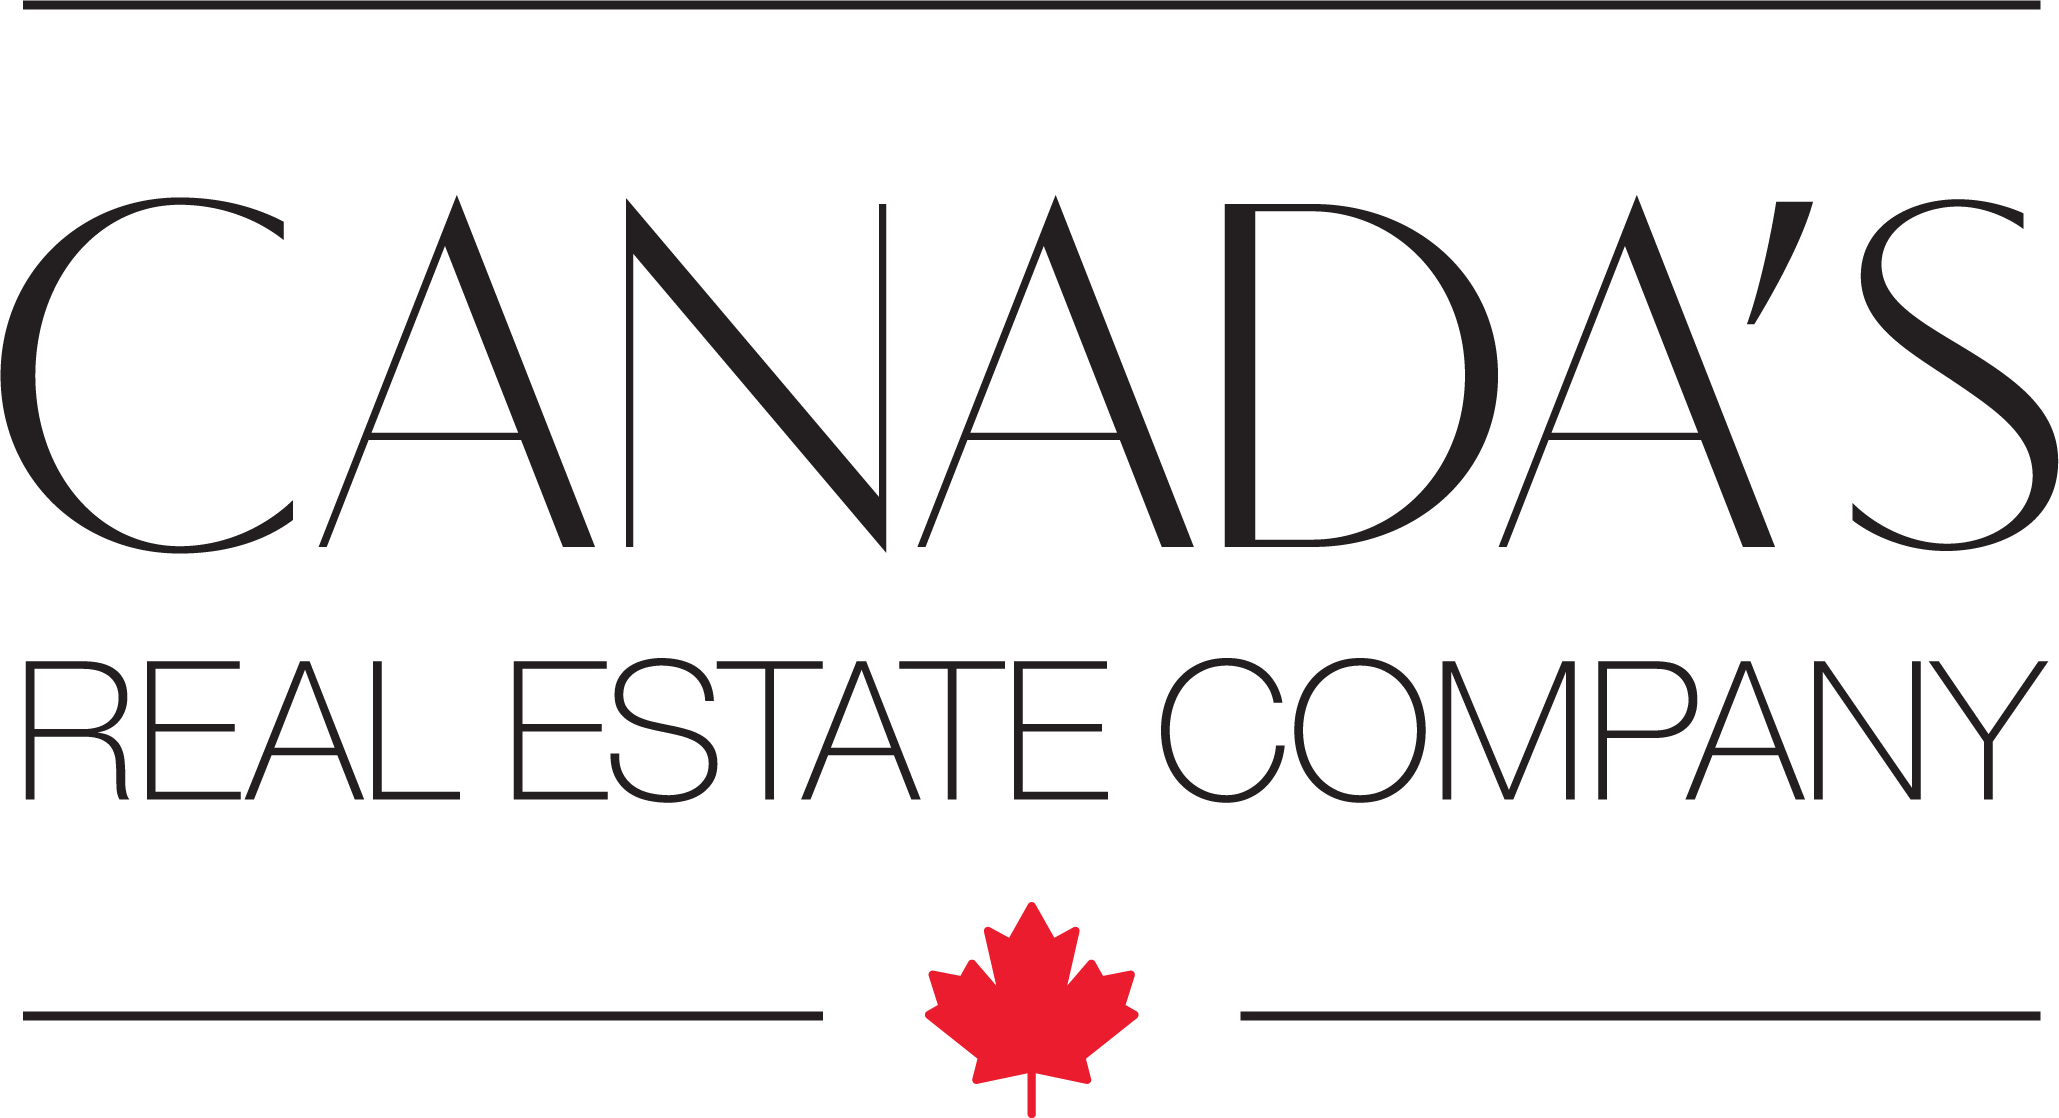 Canada's Real Estate Company